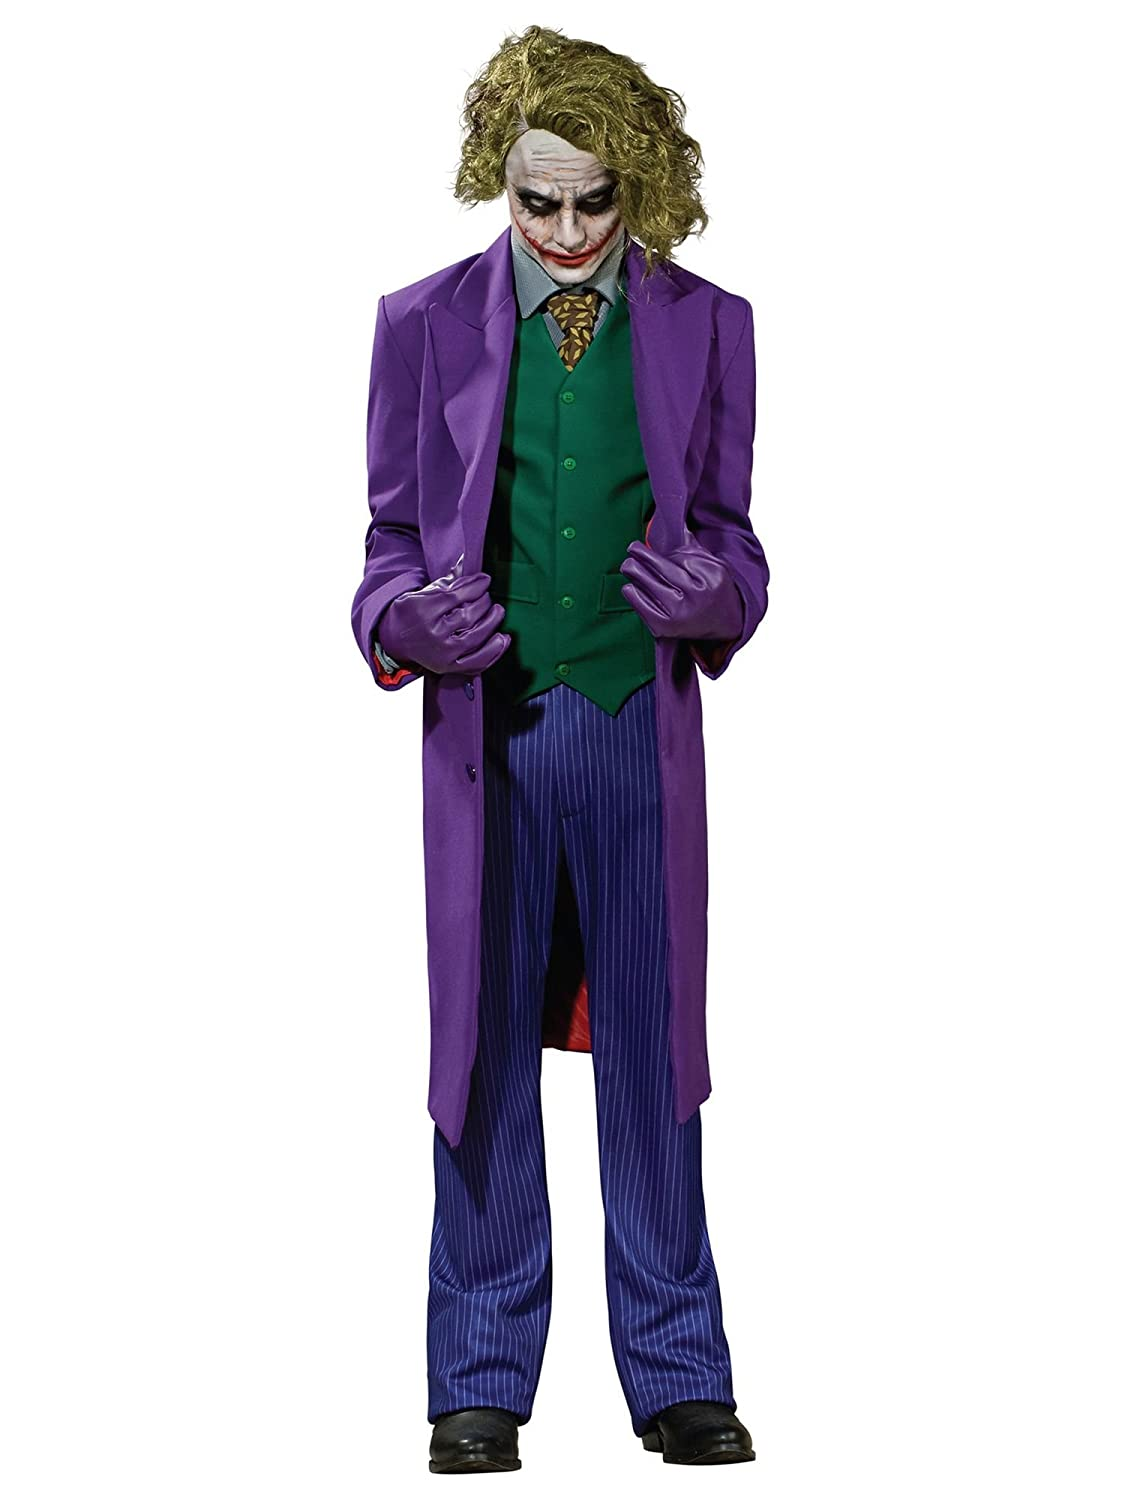 Amazon.com Rubieu0027s Costume Co. Inc Dark Knight The Joker Grand Heritage Costume Clothing  sc 1 st  Amazon.com : joker costume for baby  - Germanpascual.Com